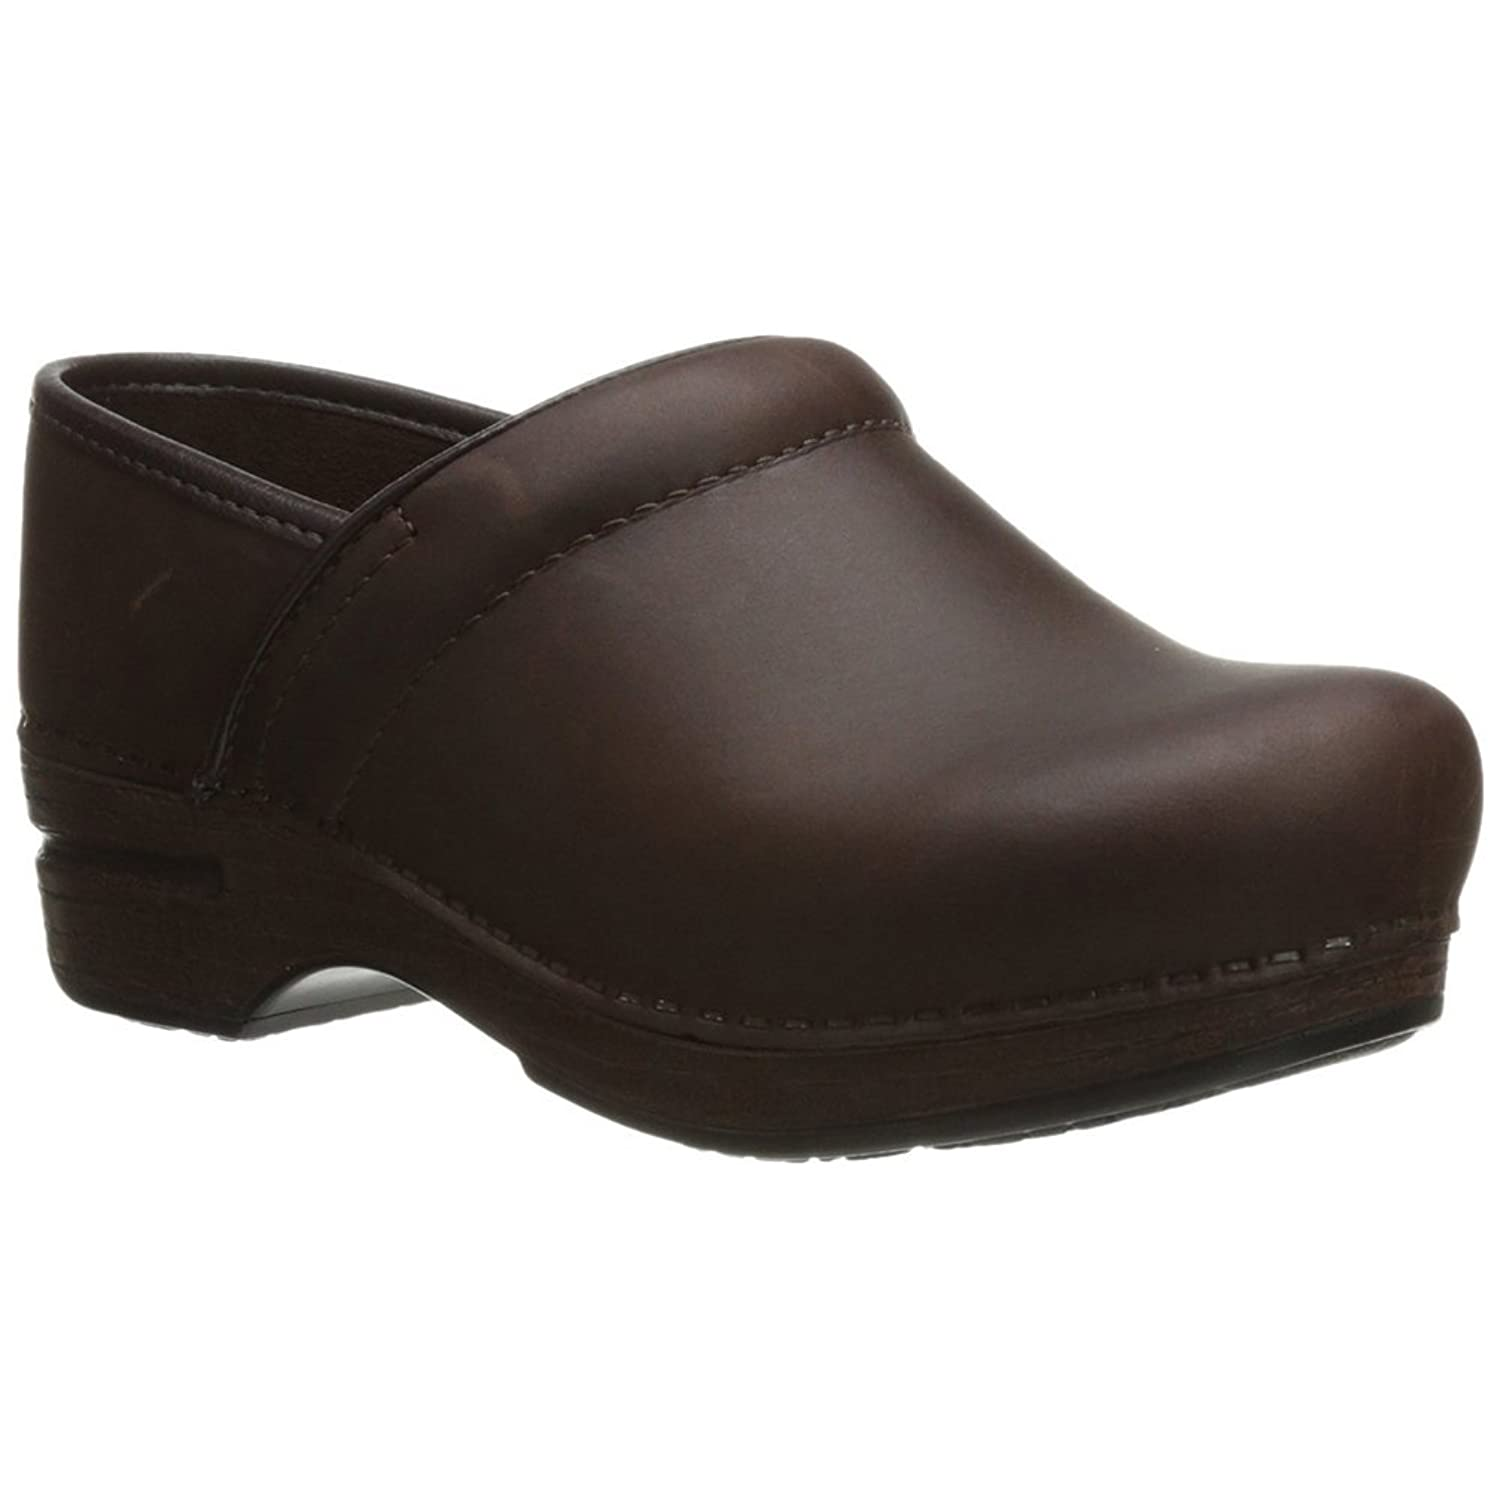 Dansko Pro XP Clogs Review